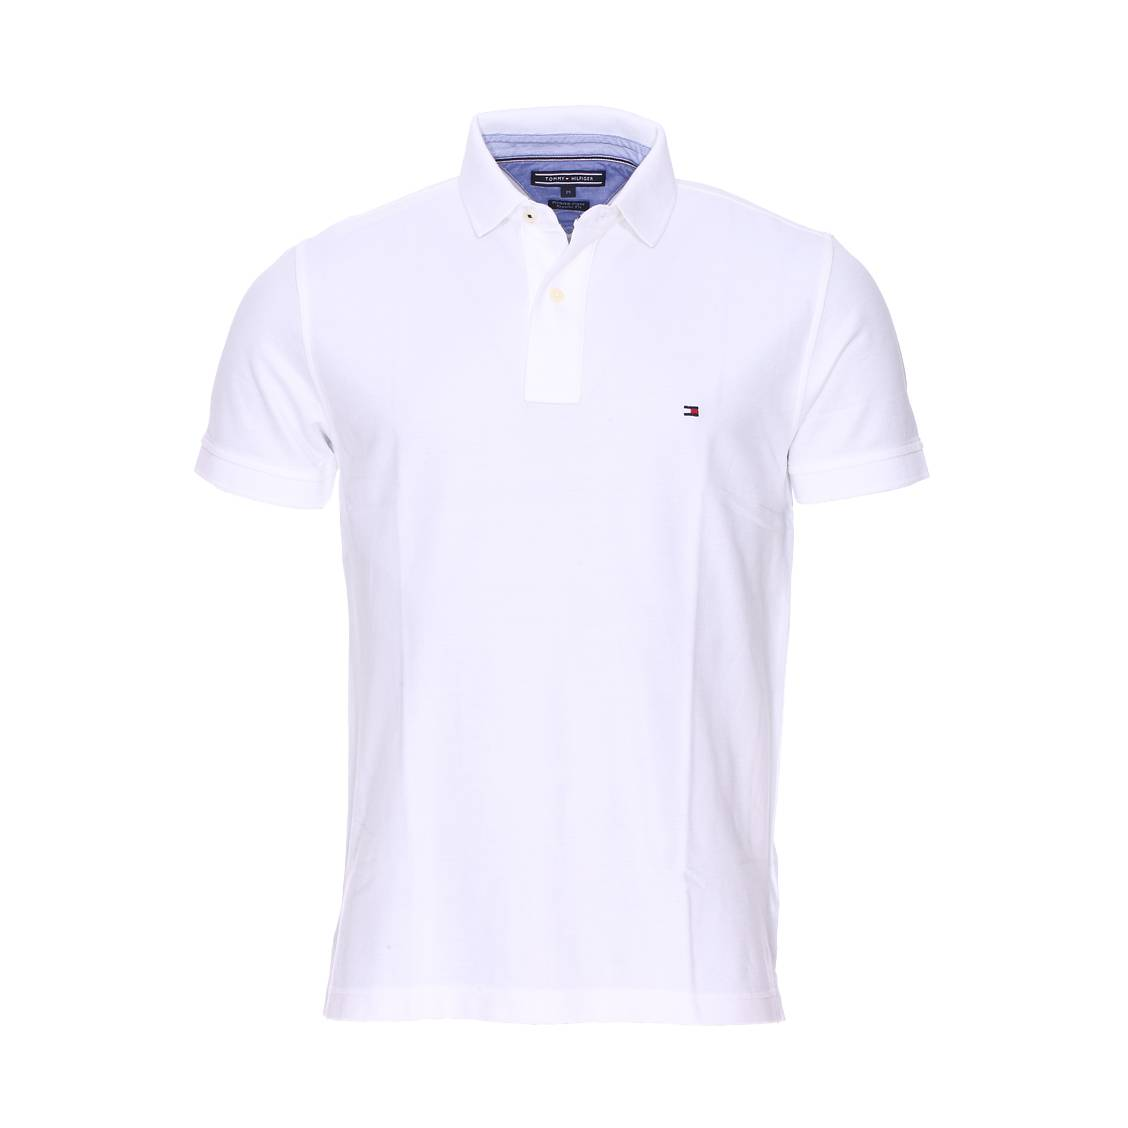 imagesPolo-tommy-hilfiger-4.jpg